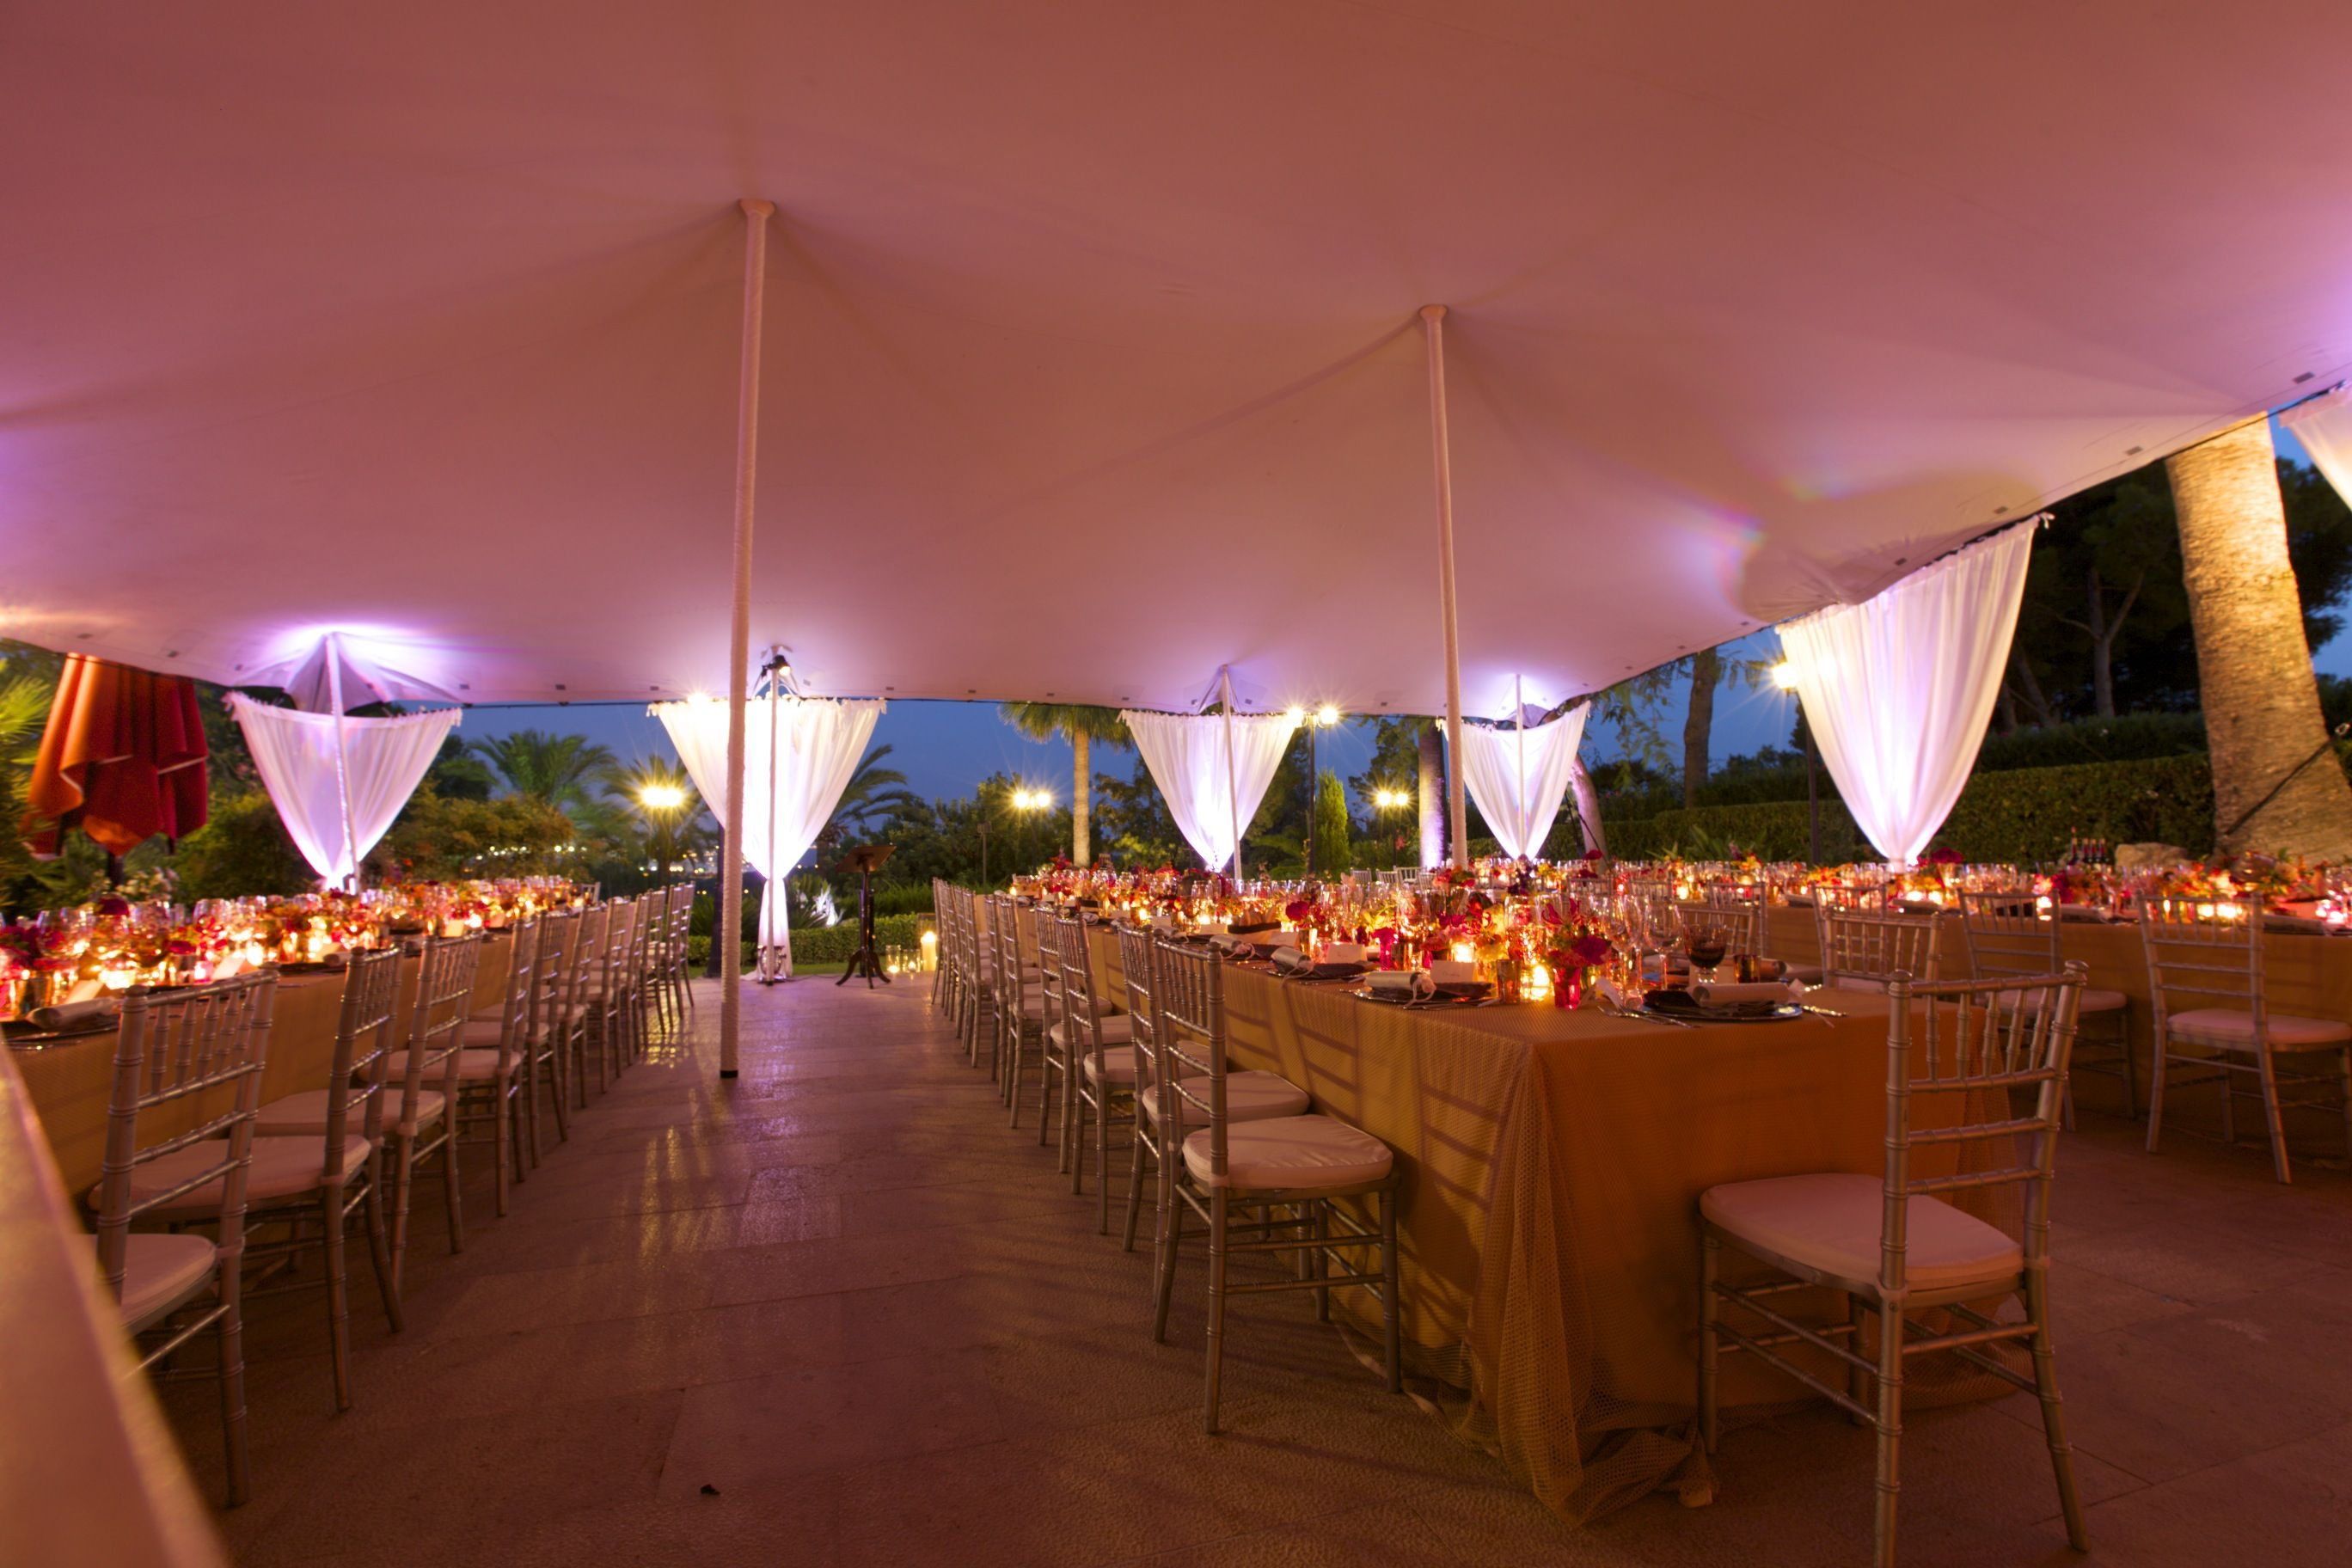 Undercover Events Stretch Tents official tent supplier at the Super Yacht Cup Palma 2013 & Undercover Events Stretch Tents official tent supplier at the ...